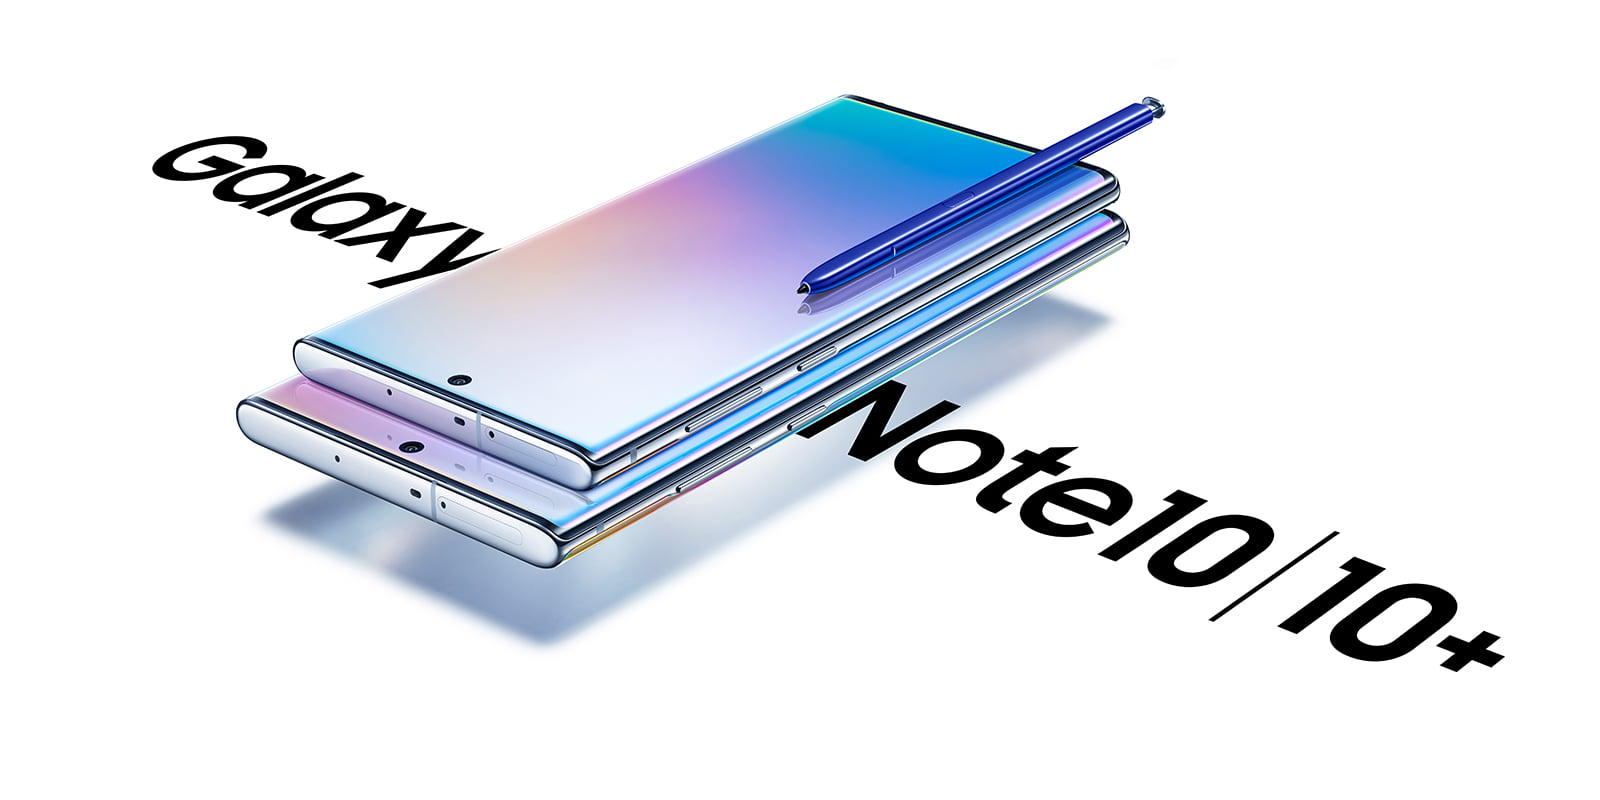 A photo of Samsung Galaxy Note 10 and Note 10 Plus